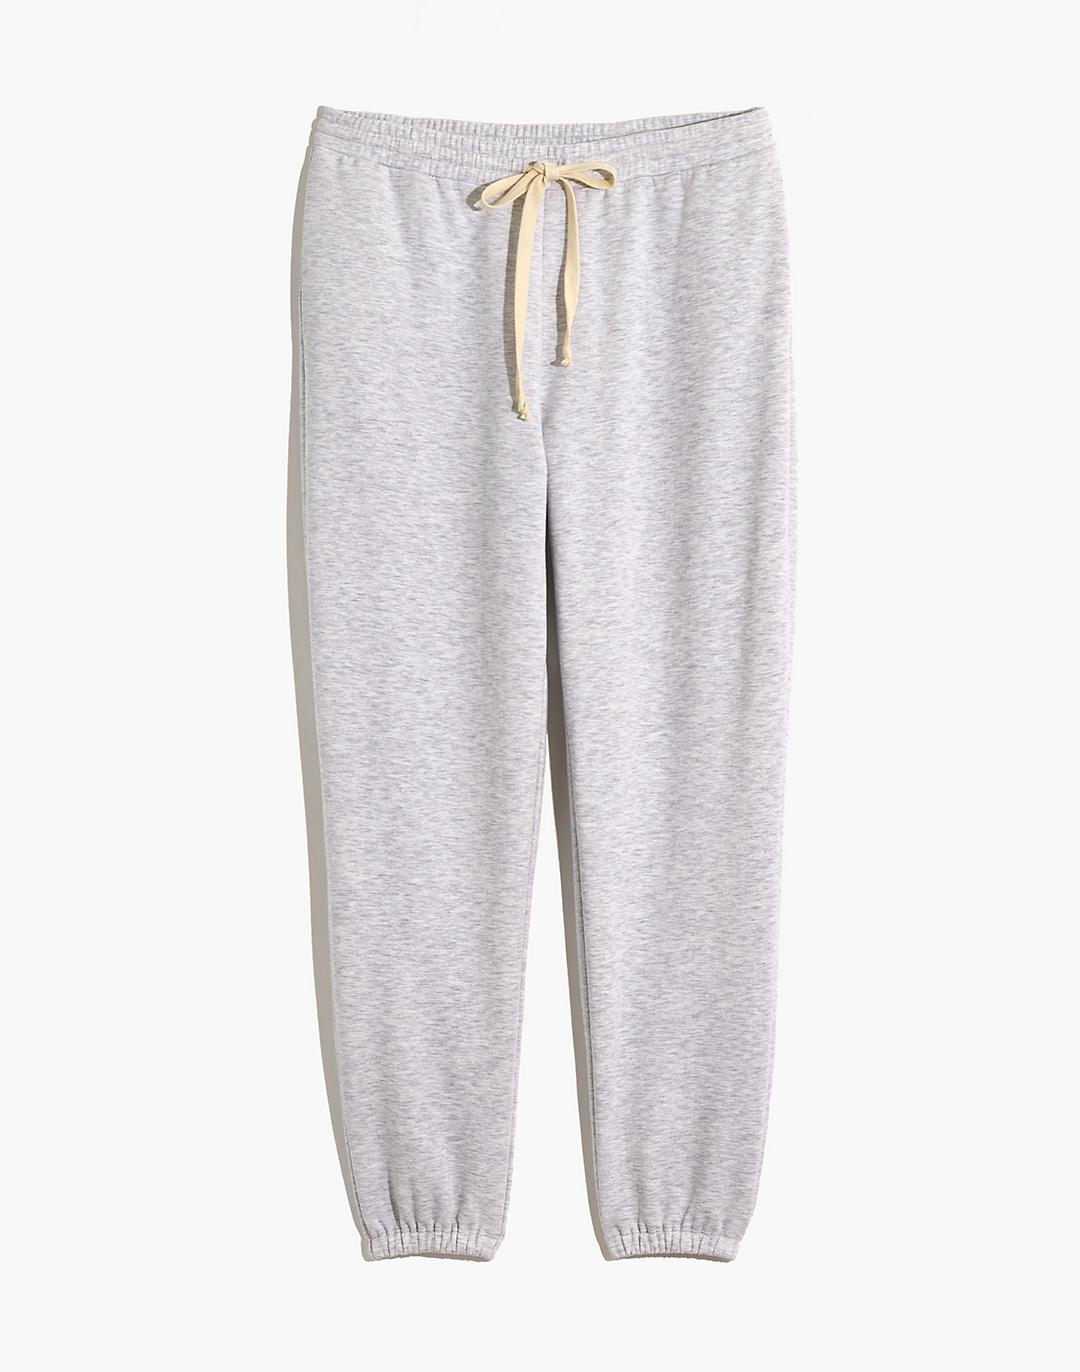 Plus MWL Superbrushed Easygoing Sweatpants 3